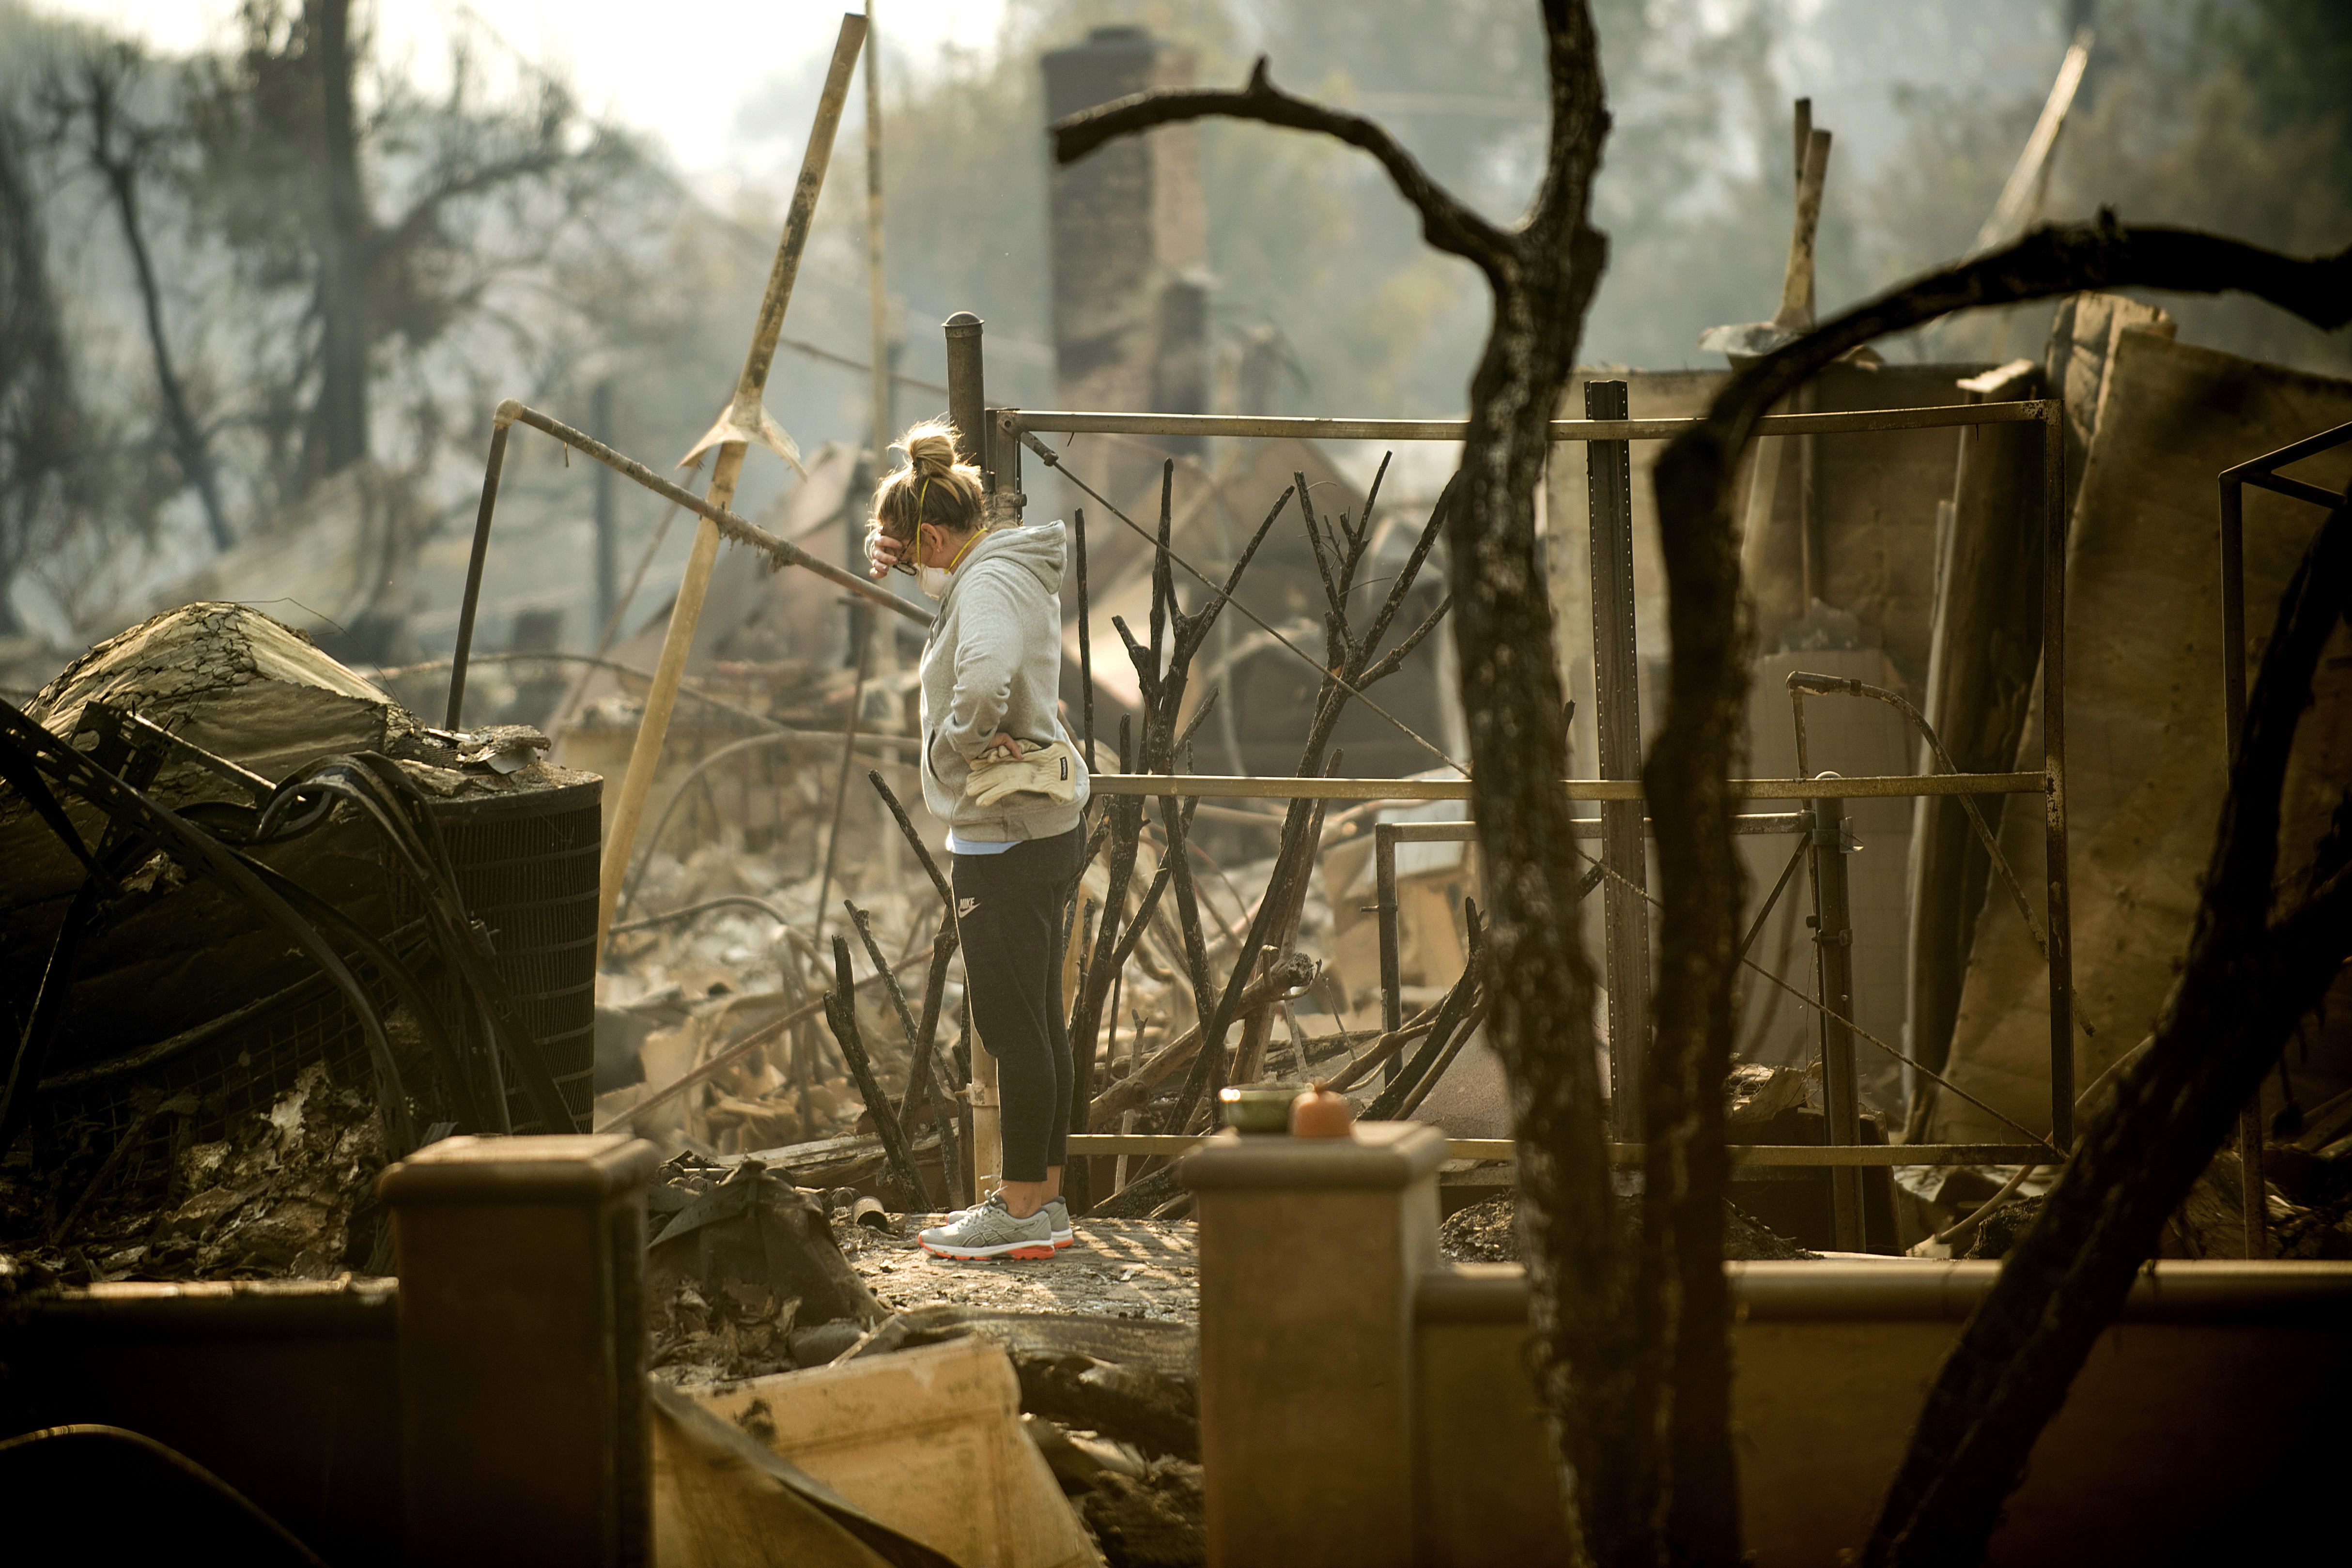 <div class='meta'><div class='origin-logo' data-origin='none'></div><span class='caption-text' data-credit='Noah Berger/AP Photo'>Bree Laubacher pauses while sifting through rubble at her Ventura, Calif., home following a wildfire on  Dec. 6. A barbecue smoker and her son's batting cage survived the blaze.</span></div>